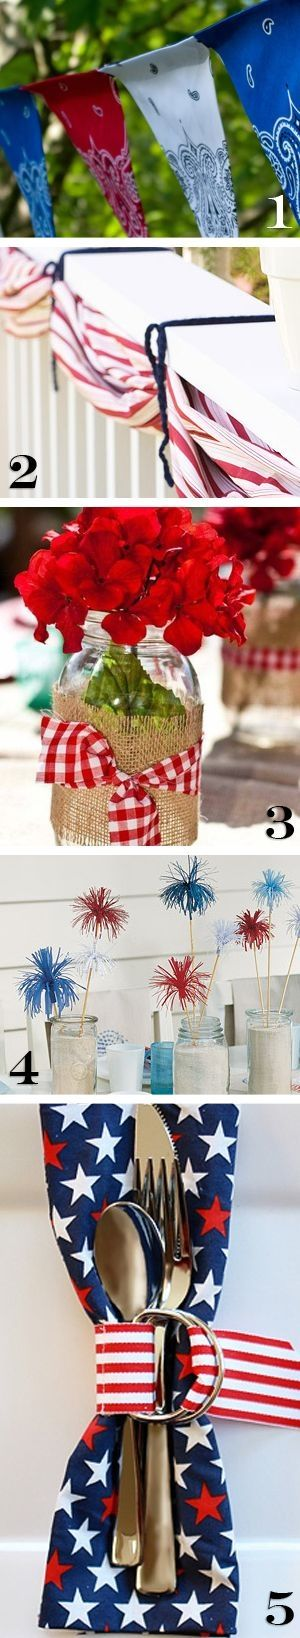 17 best images about fourth of july on pinterest for 4th of july decorating ideas for outside